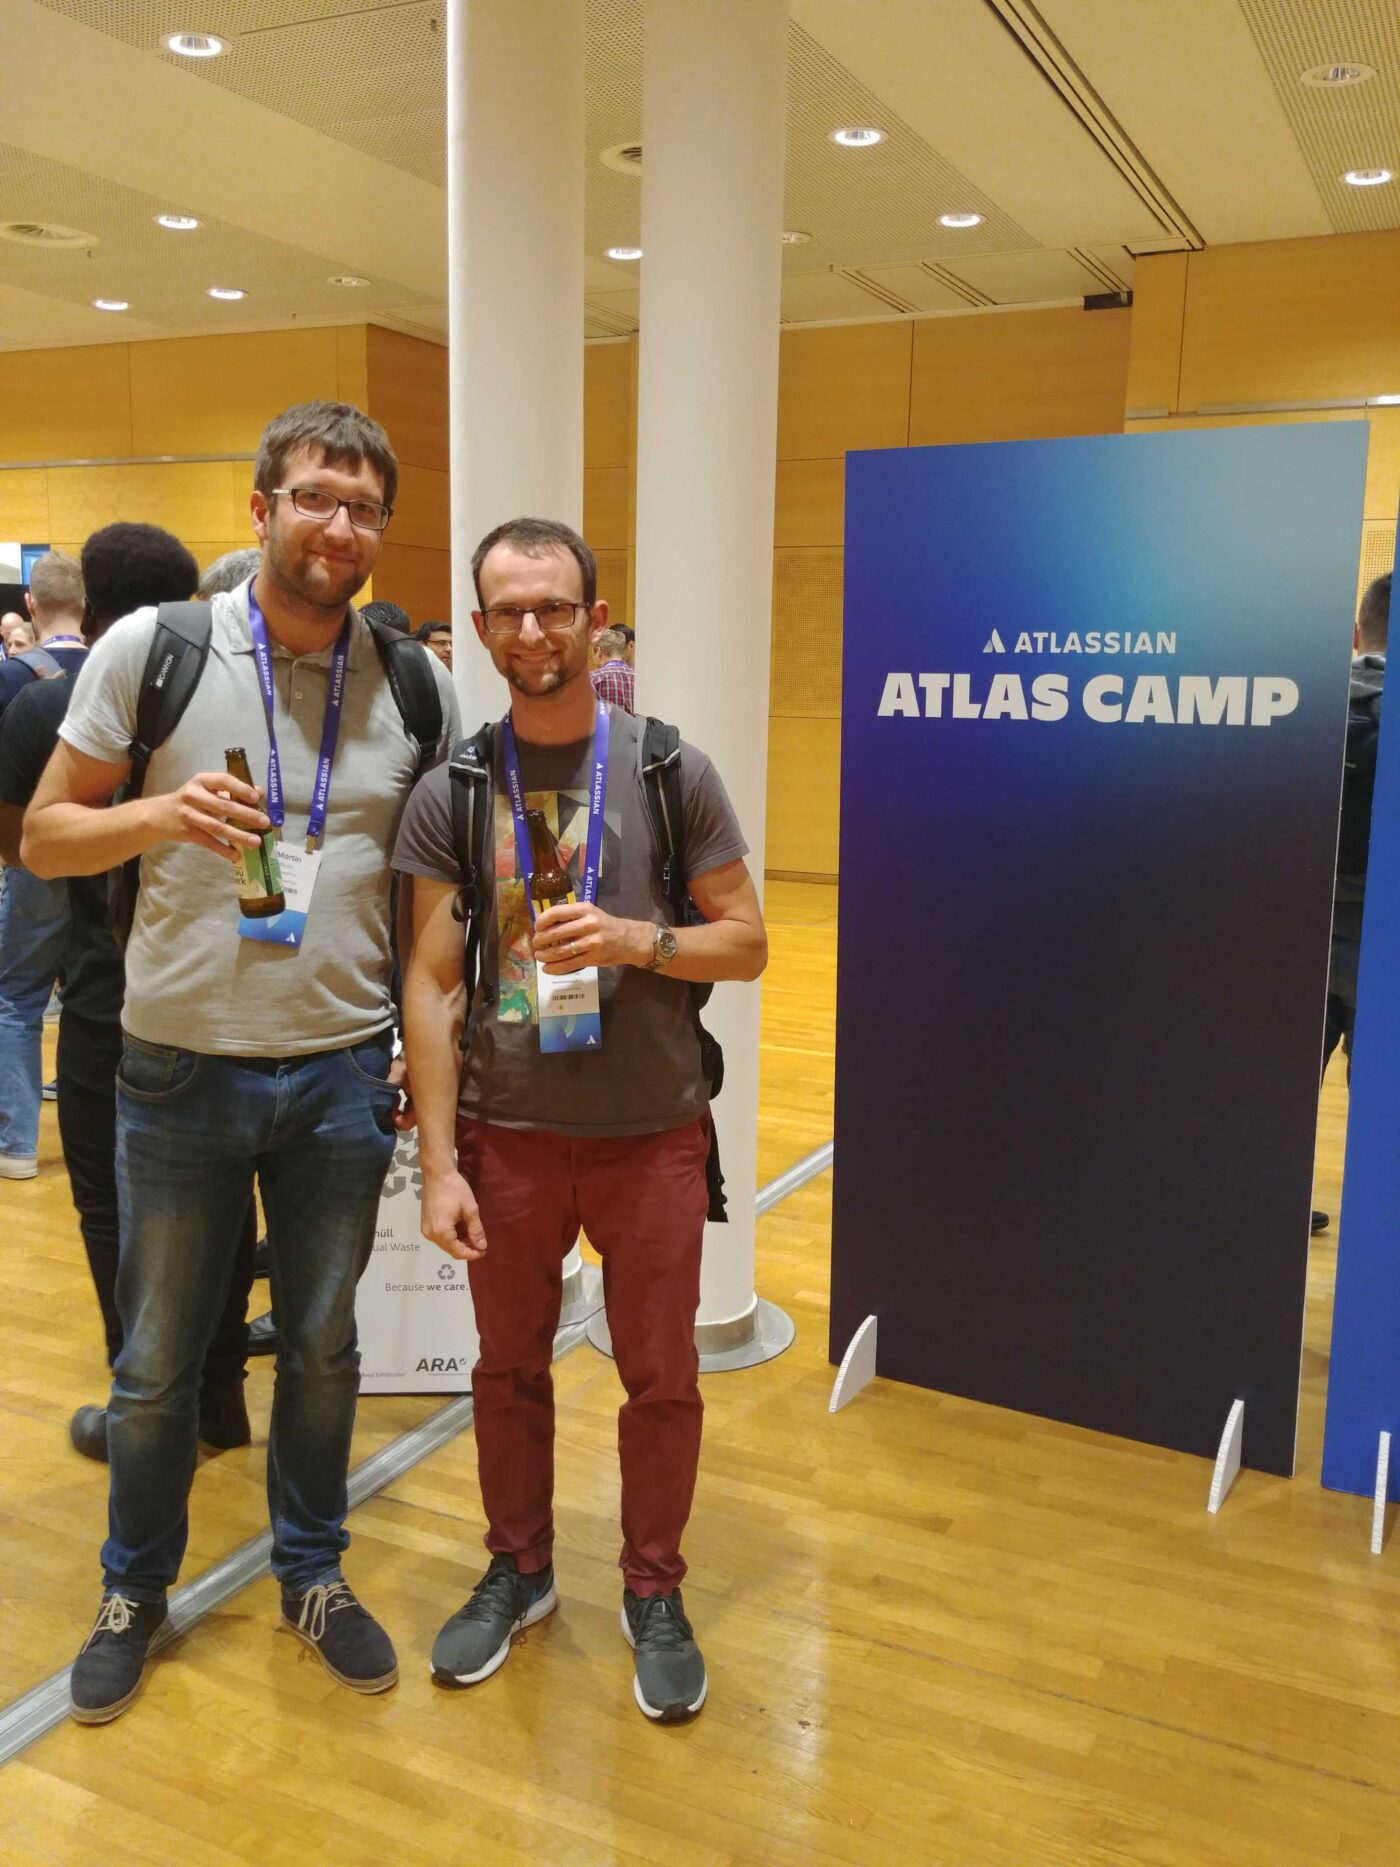 Atlas Camp 2019 MoroSystems